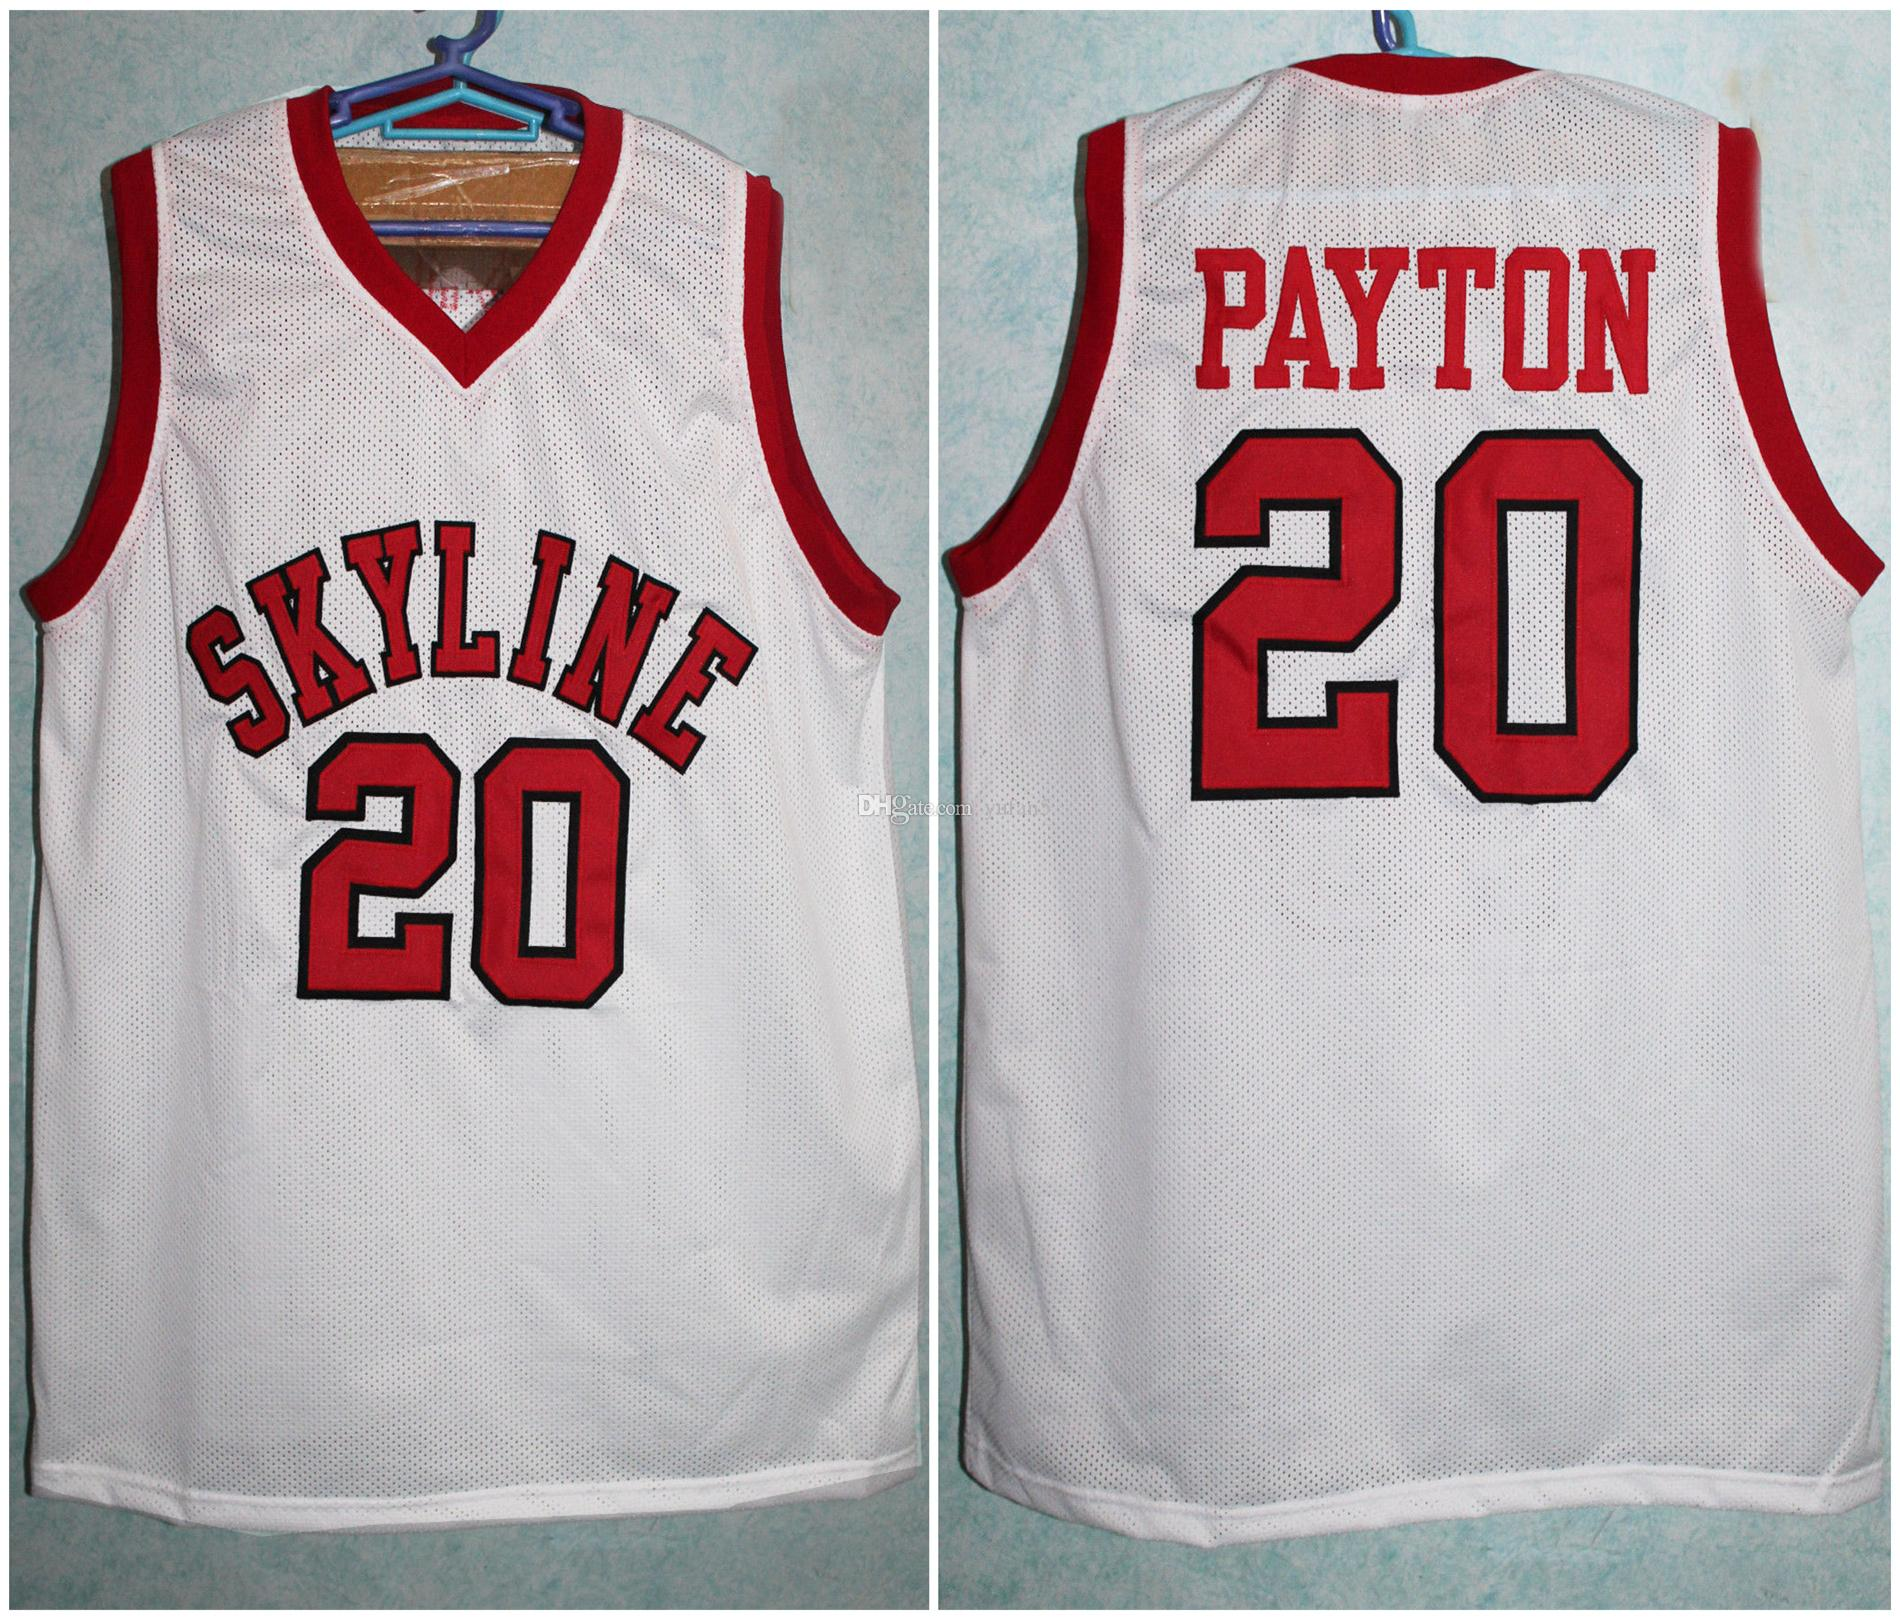 353ff49c 2019 Skyline High Schoo 20 Gary Payton Retro Classic Basketball Jersey Mens  Stitched Custom Number Name Jerseys From Yufan5, $23.35 | DHgate.Com